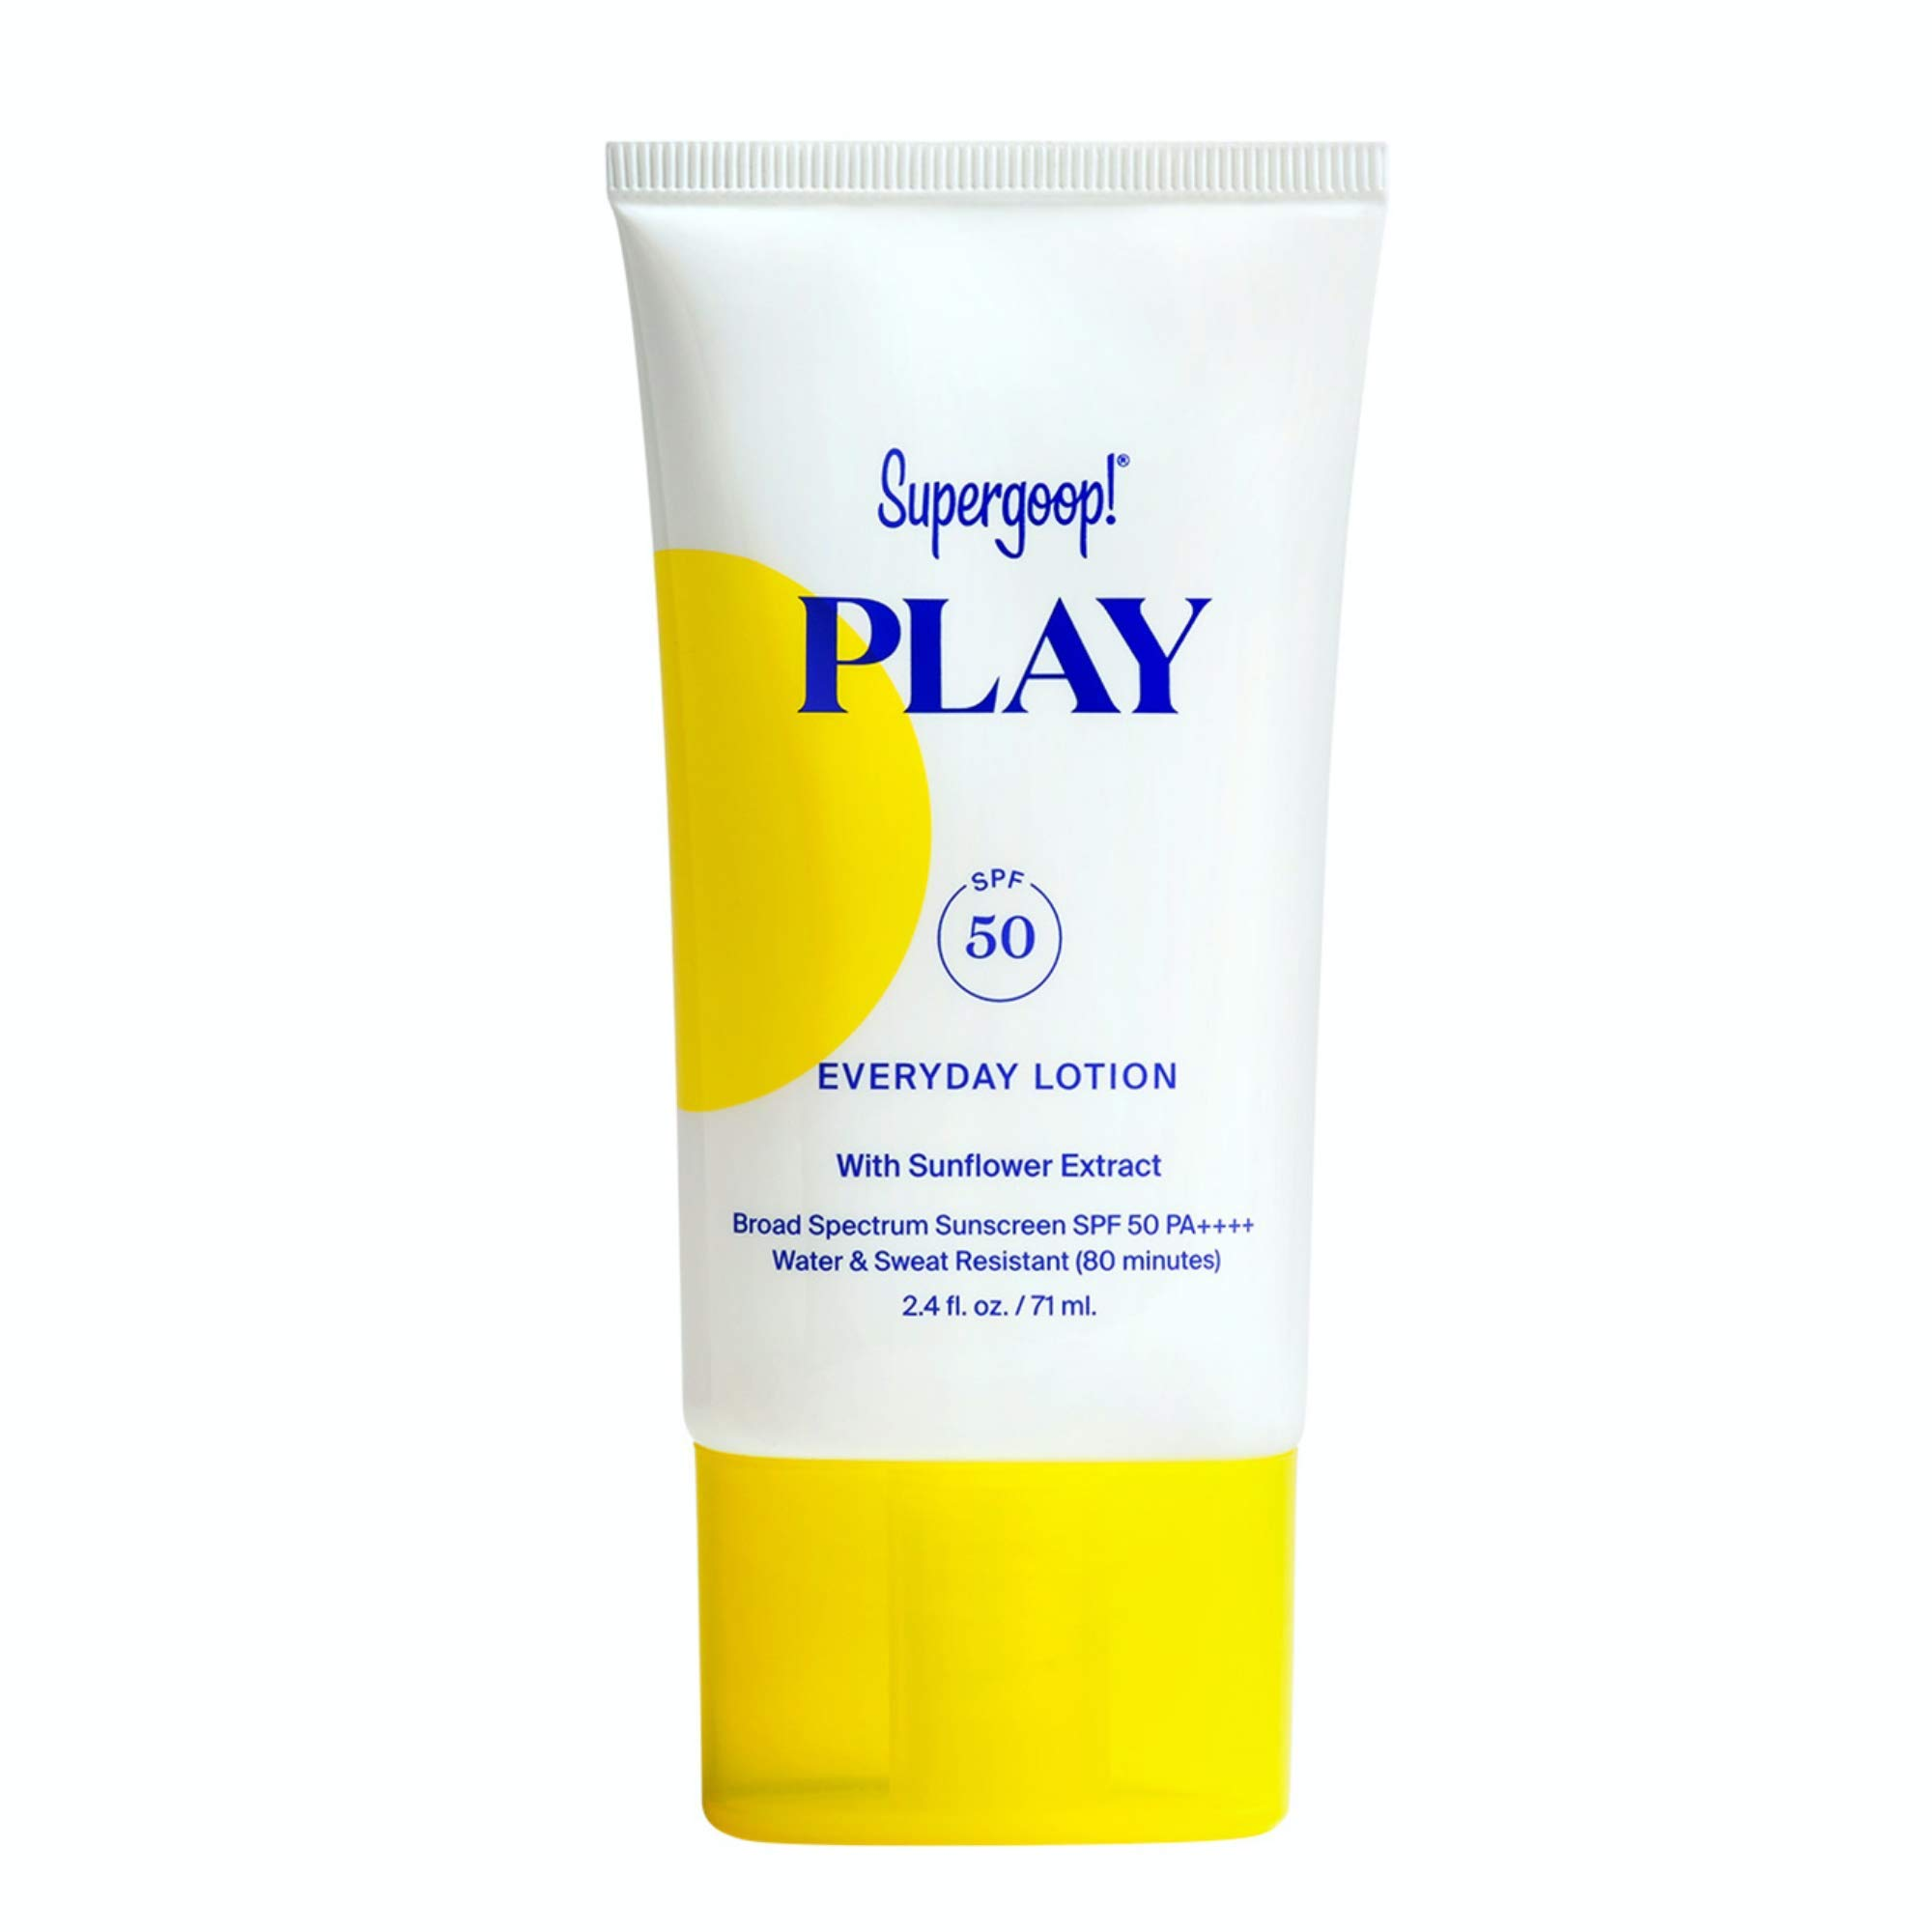 Supergoop! Everyday Play SPF 50 Lotion, 2.4 fl oz - Broad Spectrum Sunscreen for Sensitive Skin - Water & Sweat Resistant Body & Face Sunscreen - Athlete-Trusted, Great for Active Days